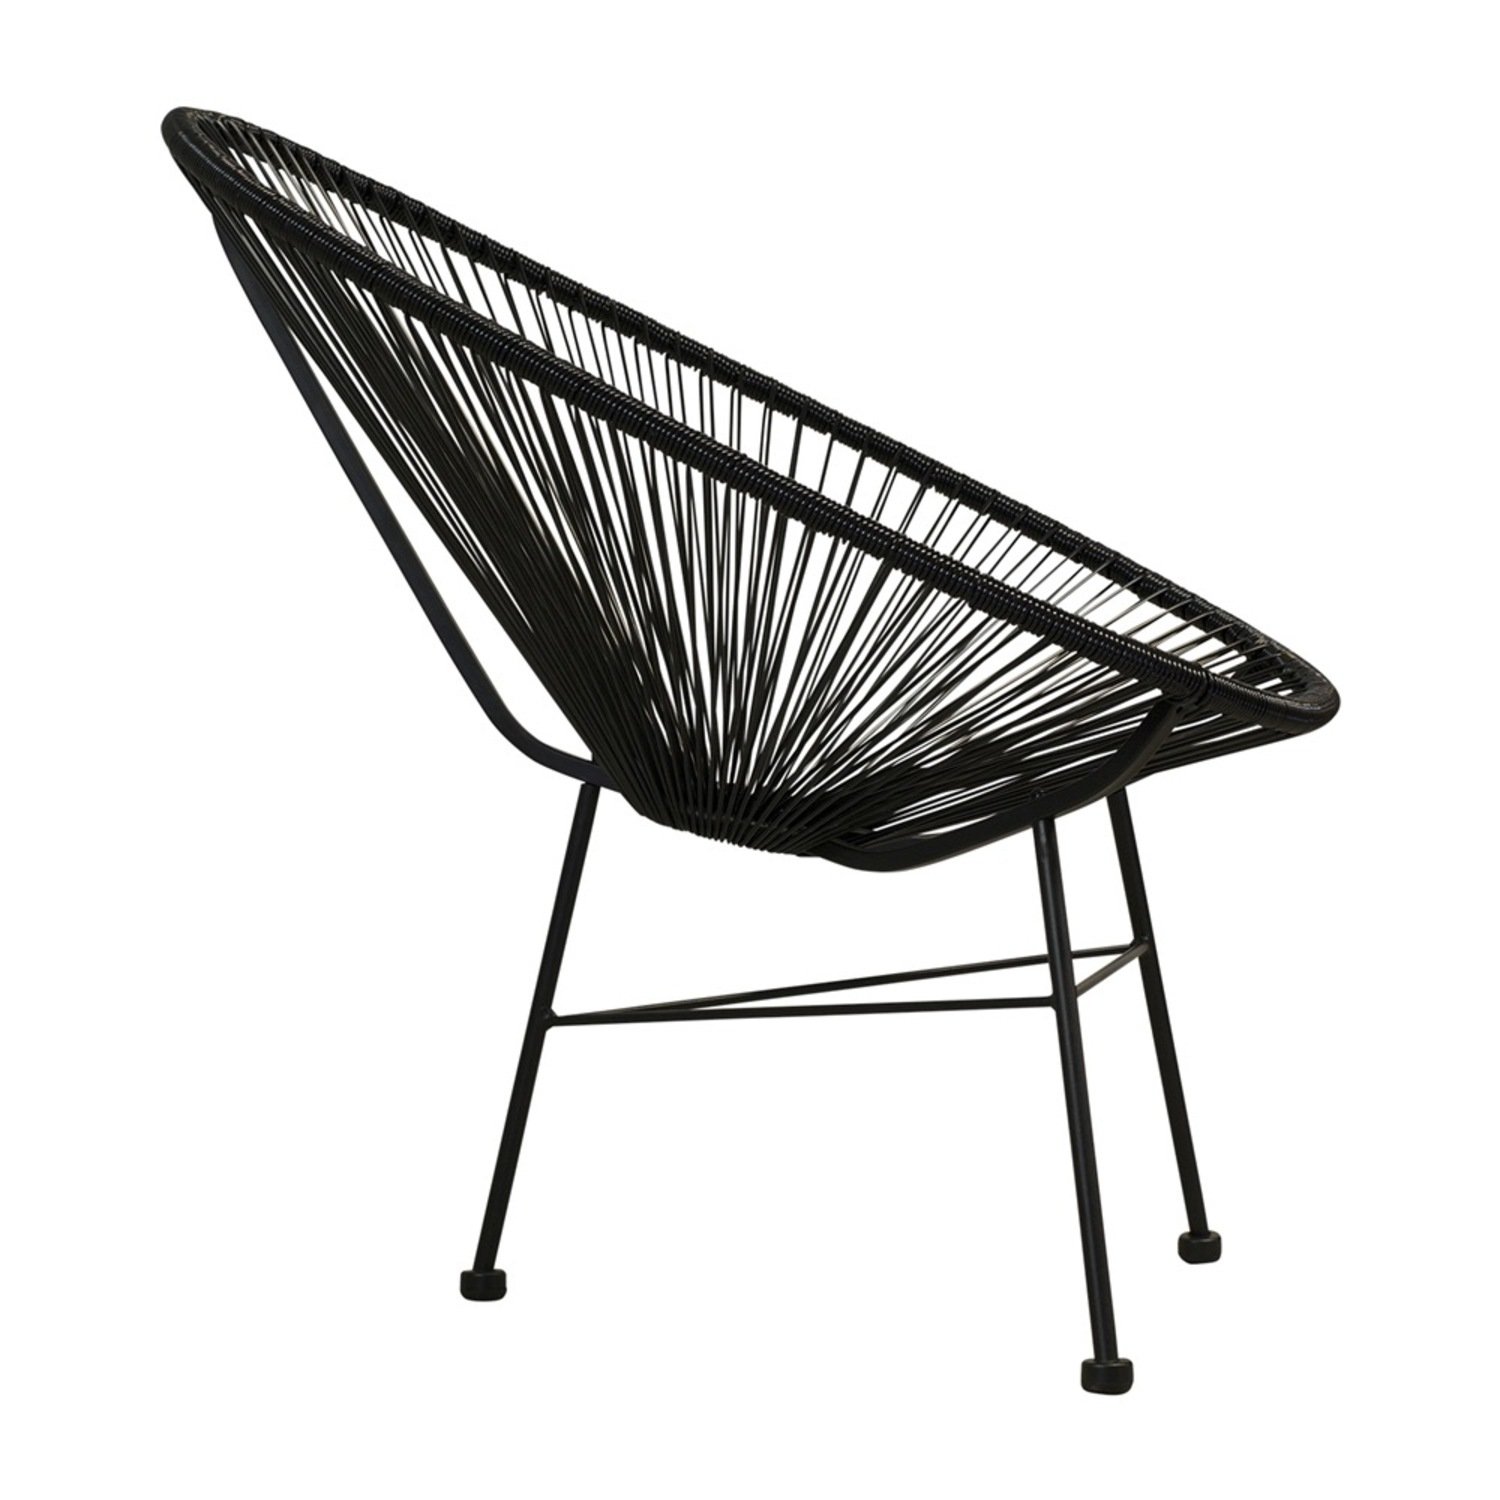 Crate & Barrel Black Spindle Lounge Chair - image-1